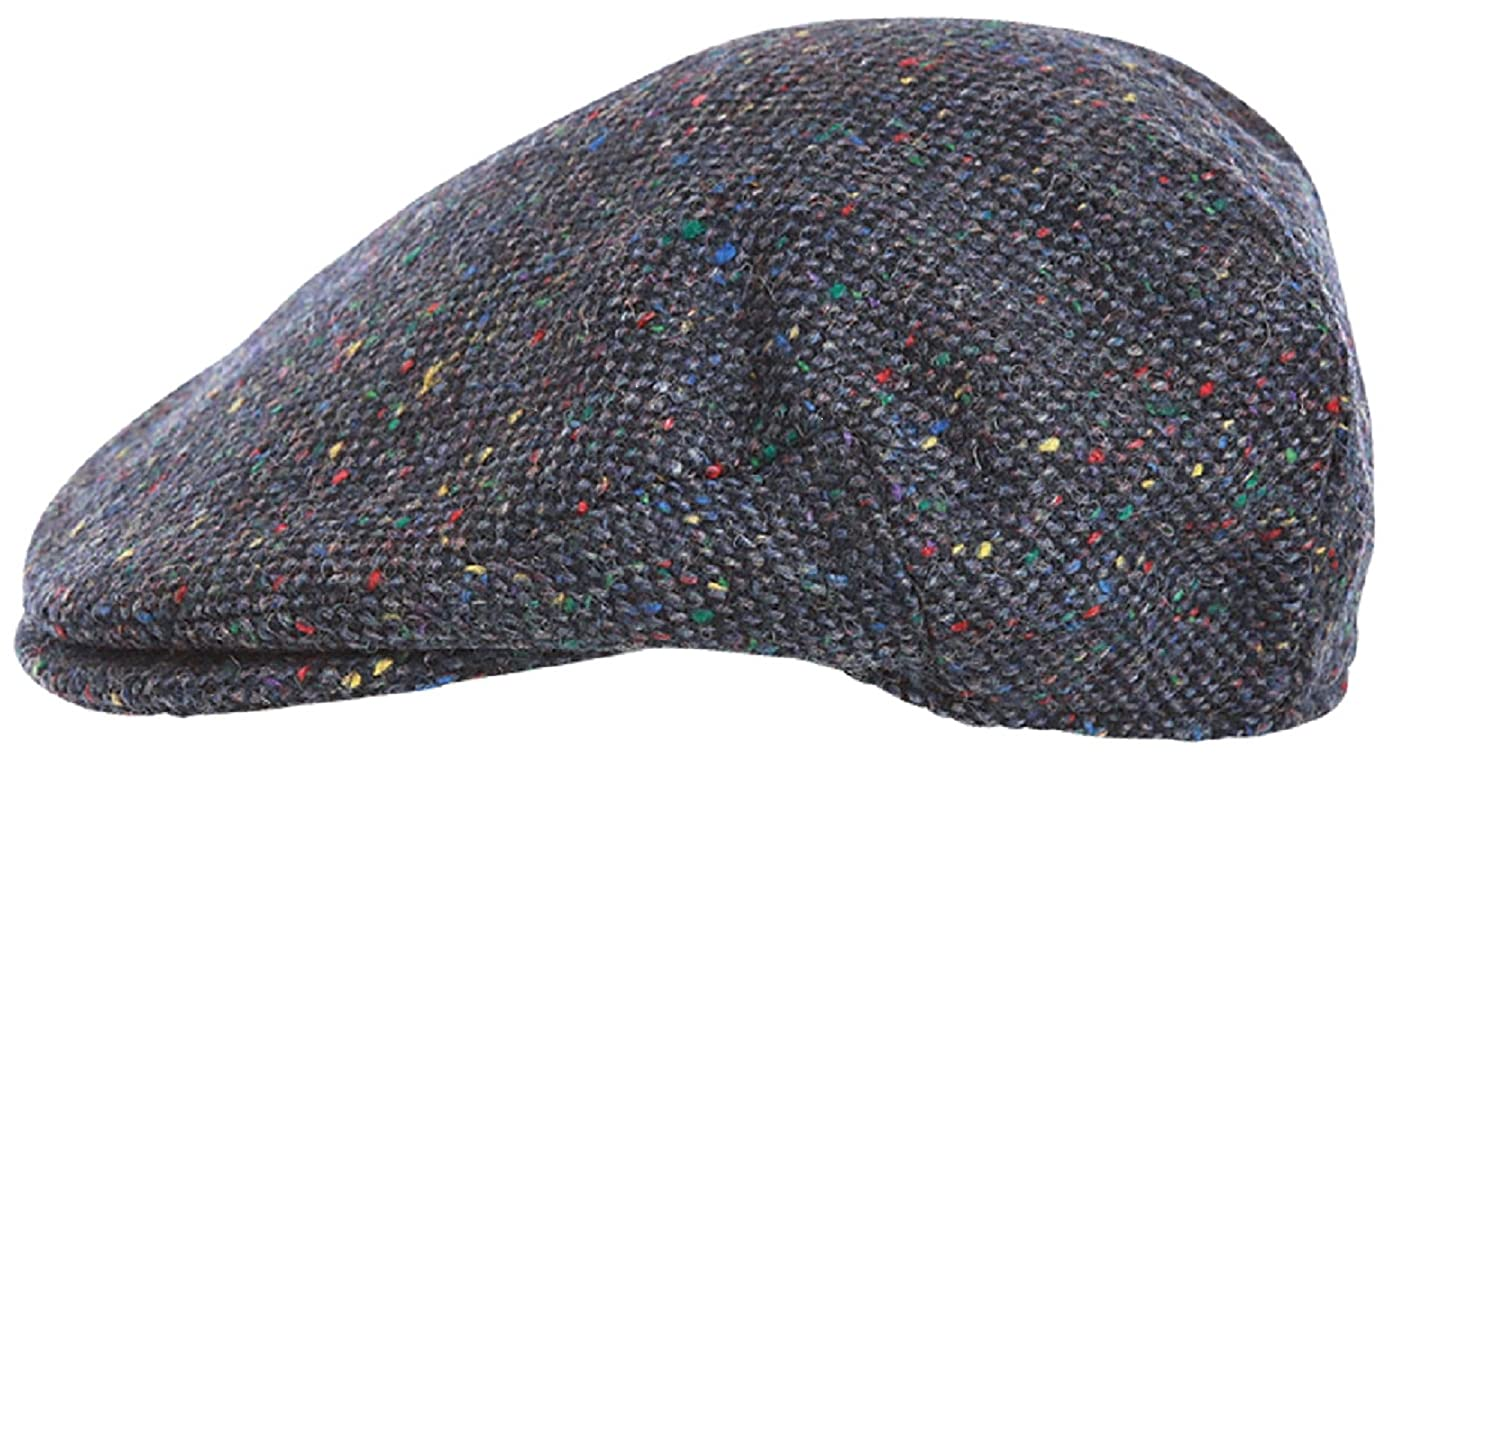 Hanna Hats of Donegal.Irish Flat Cap.Donegal Tweed.Blue Tweed